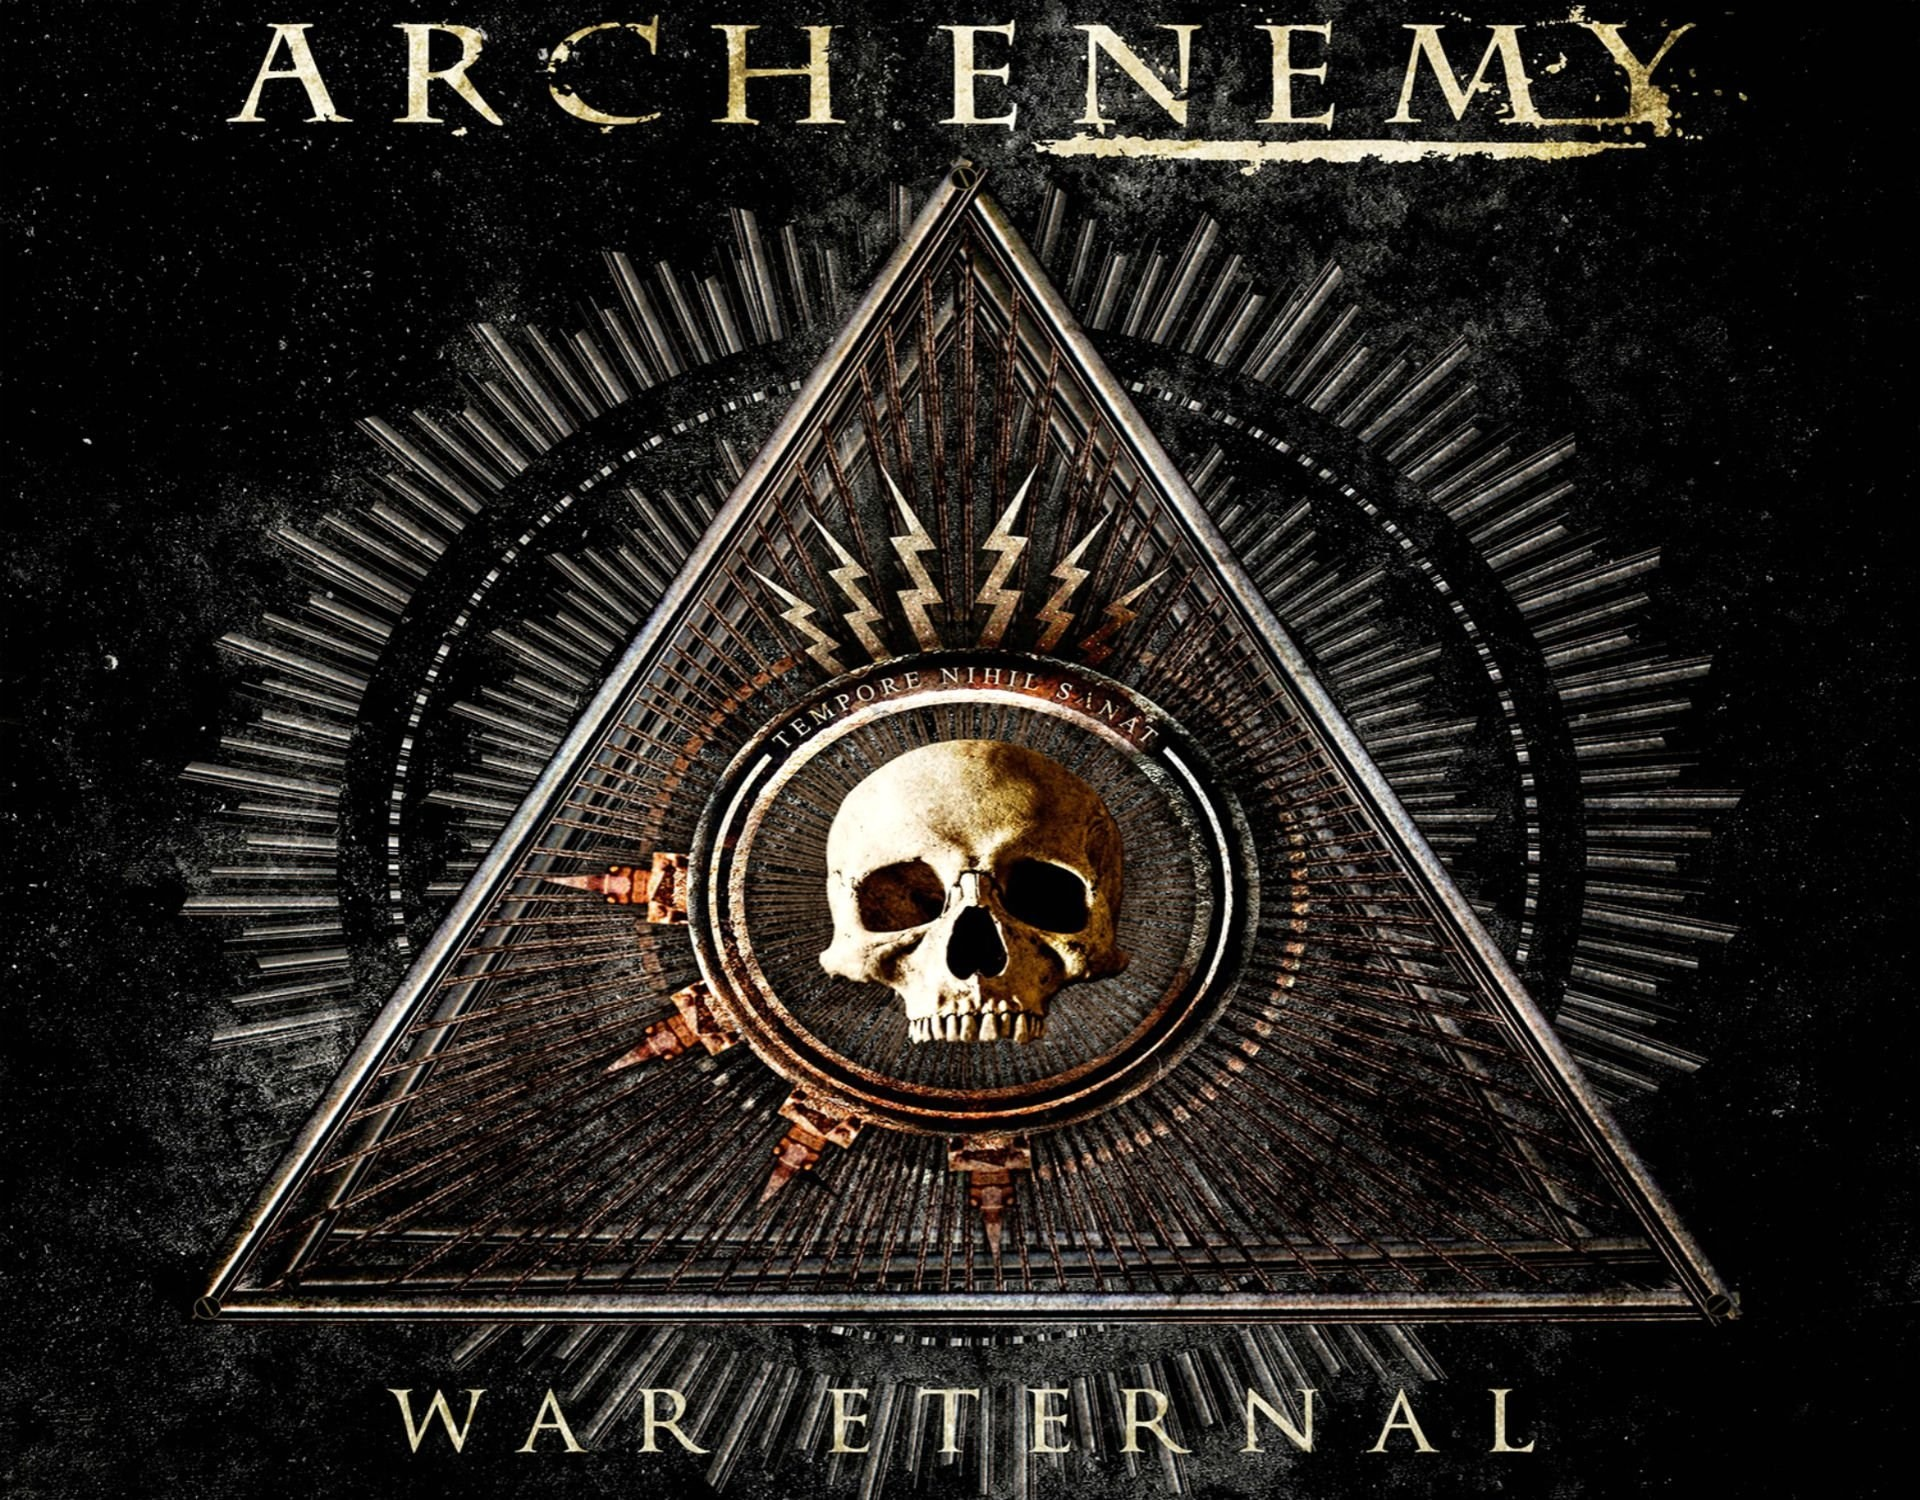 1920x1500 2017-03-12 - arch enemy pic desktop nexus wallpaper, #1921992